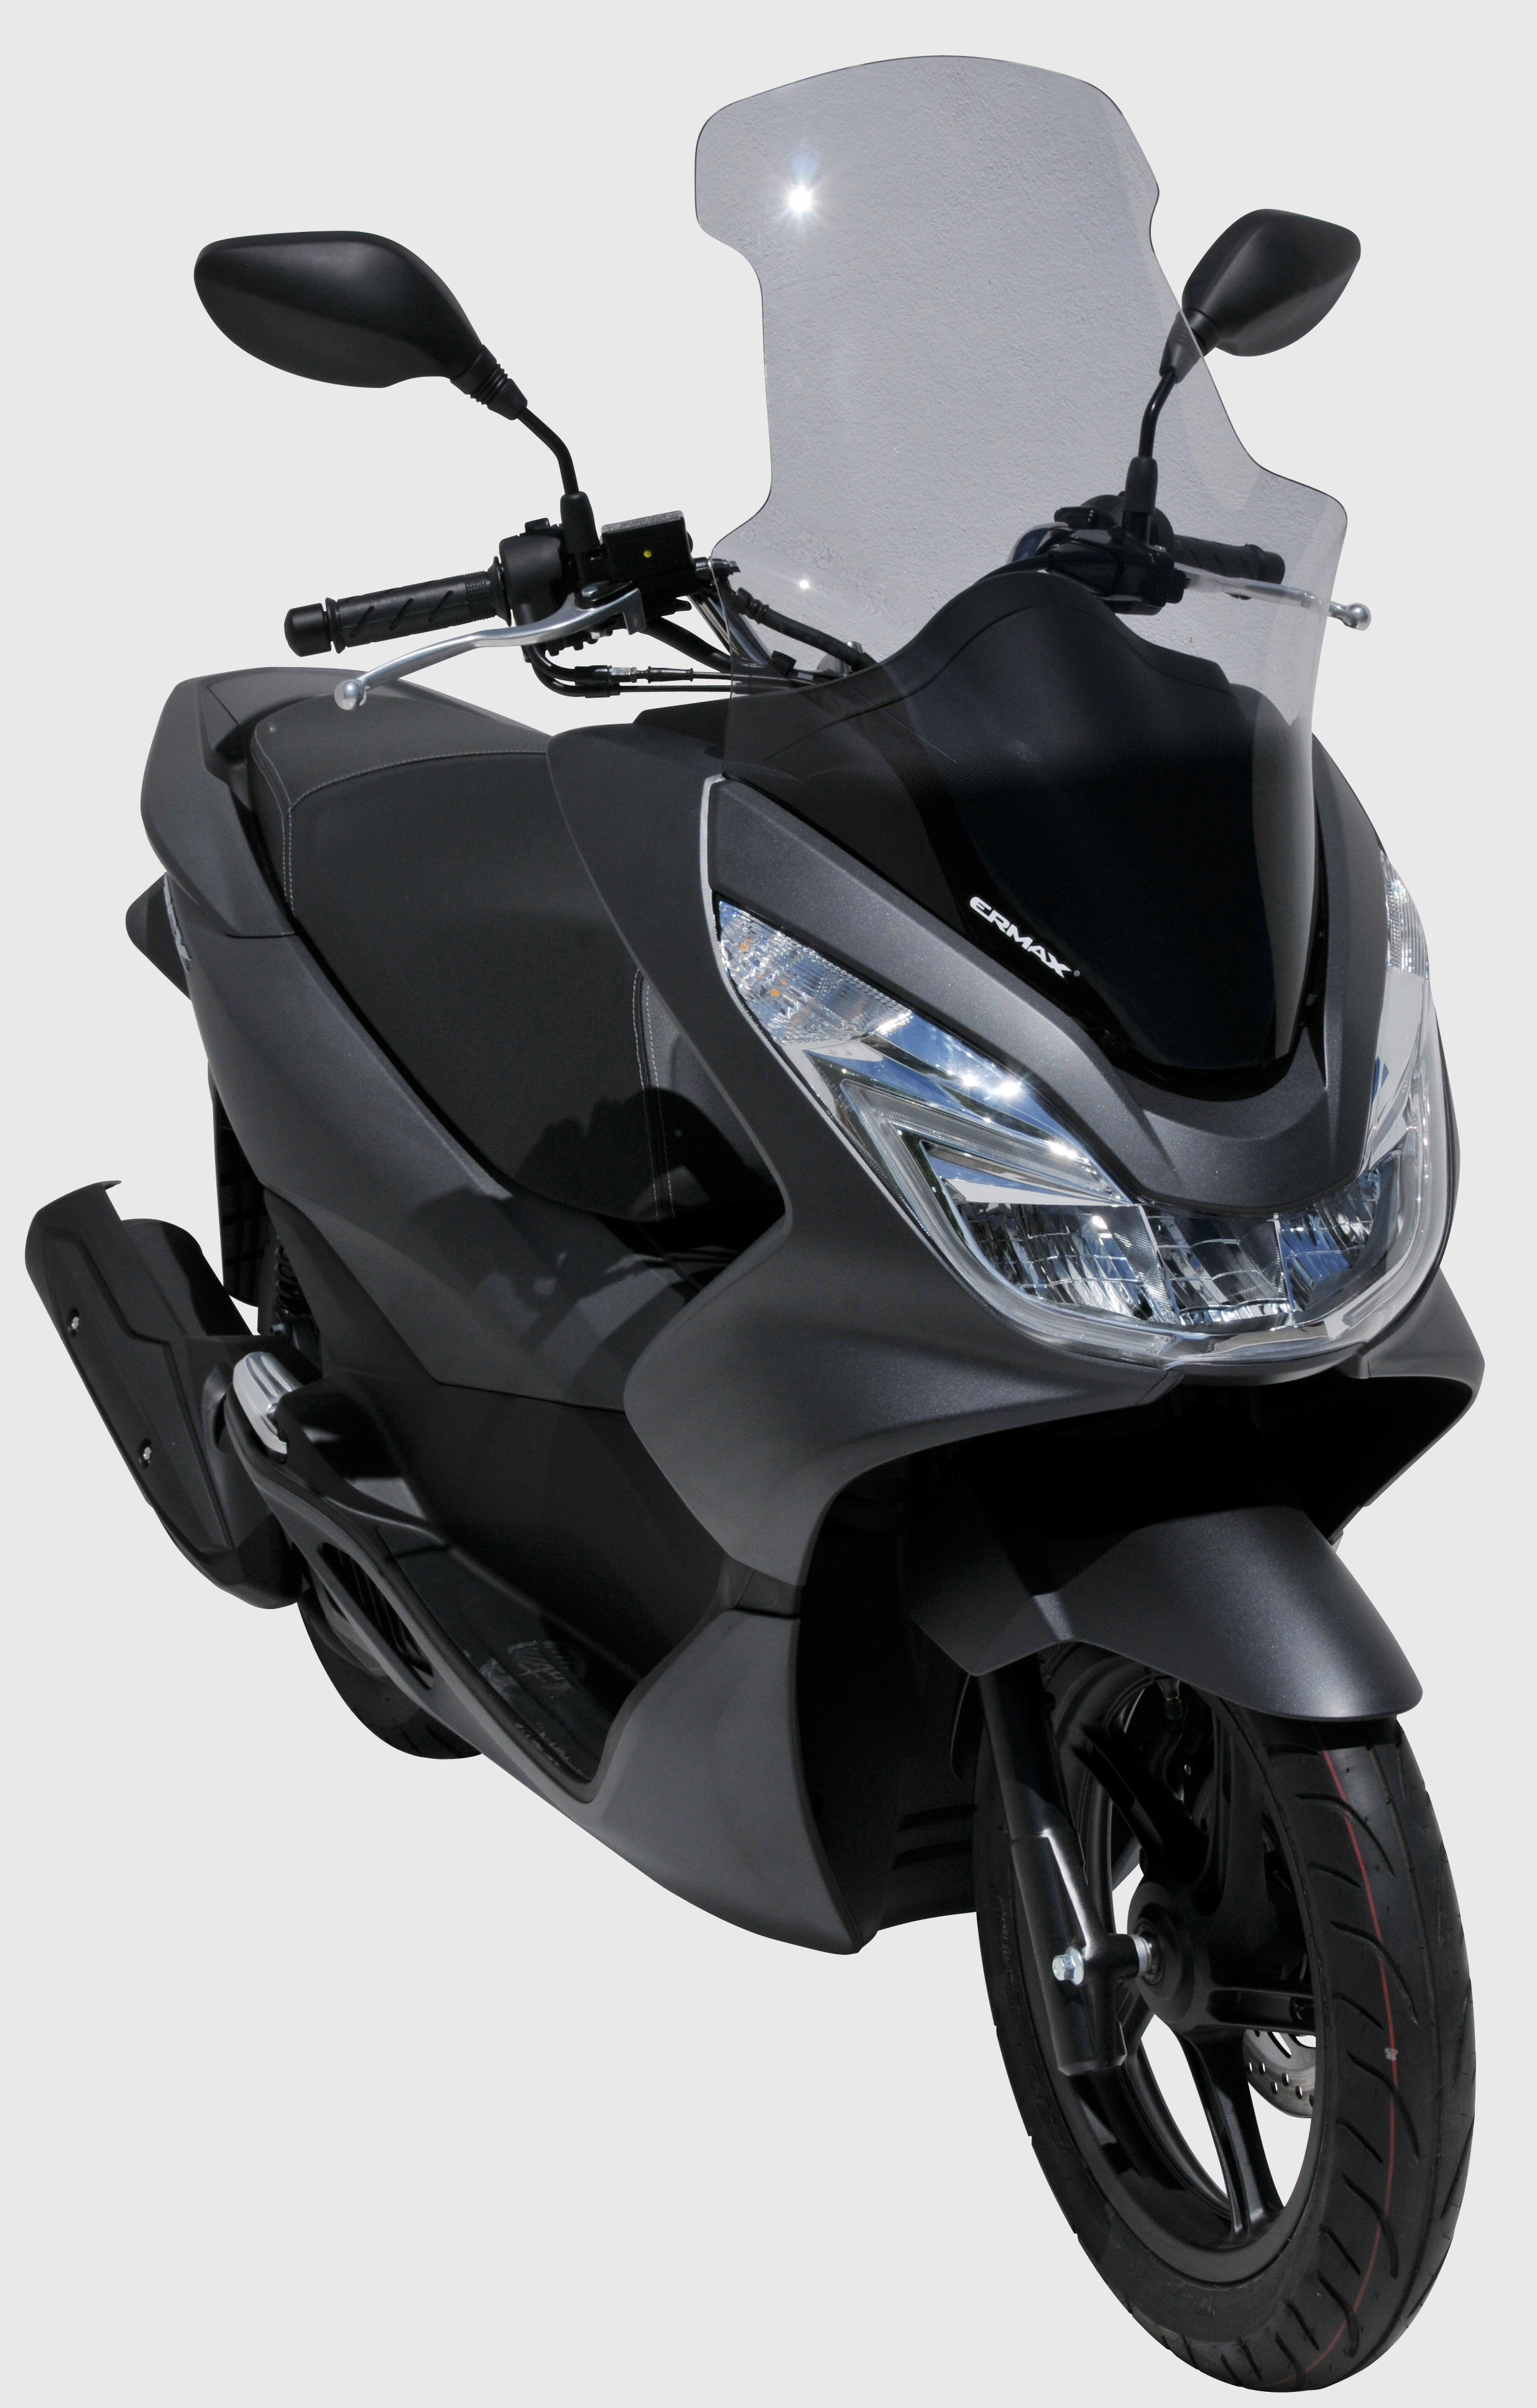 High protection windshield ermax for pcx 125 150 2014 2017 70 cm with protection of hands